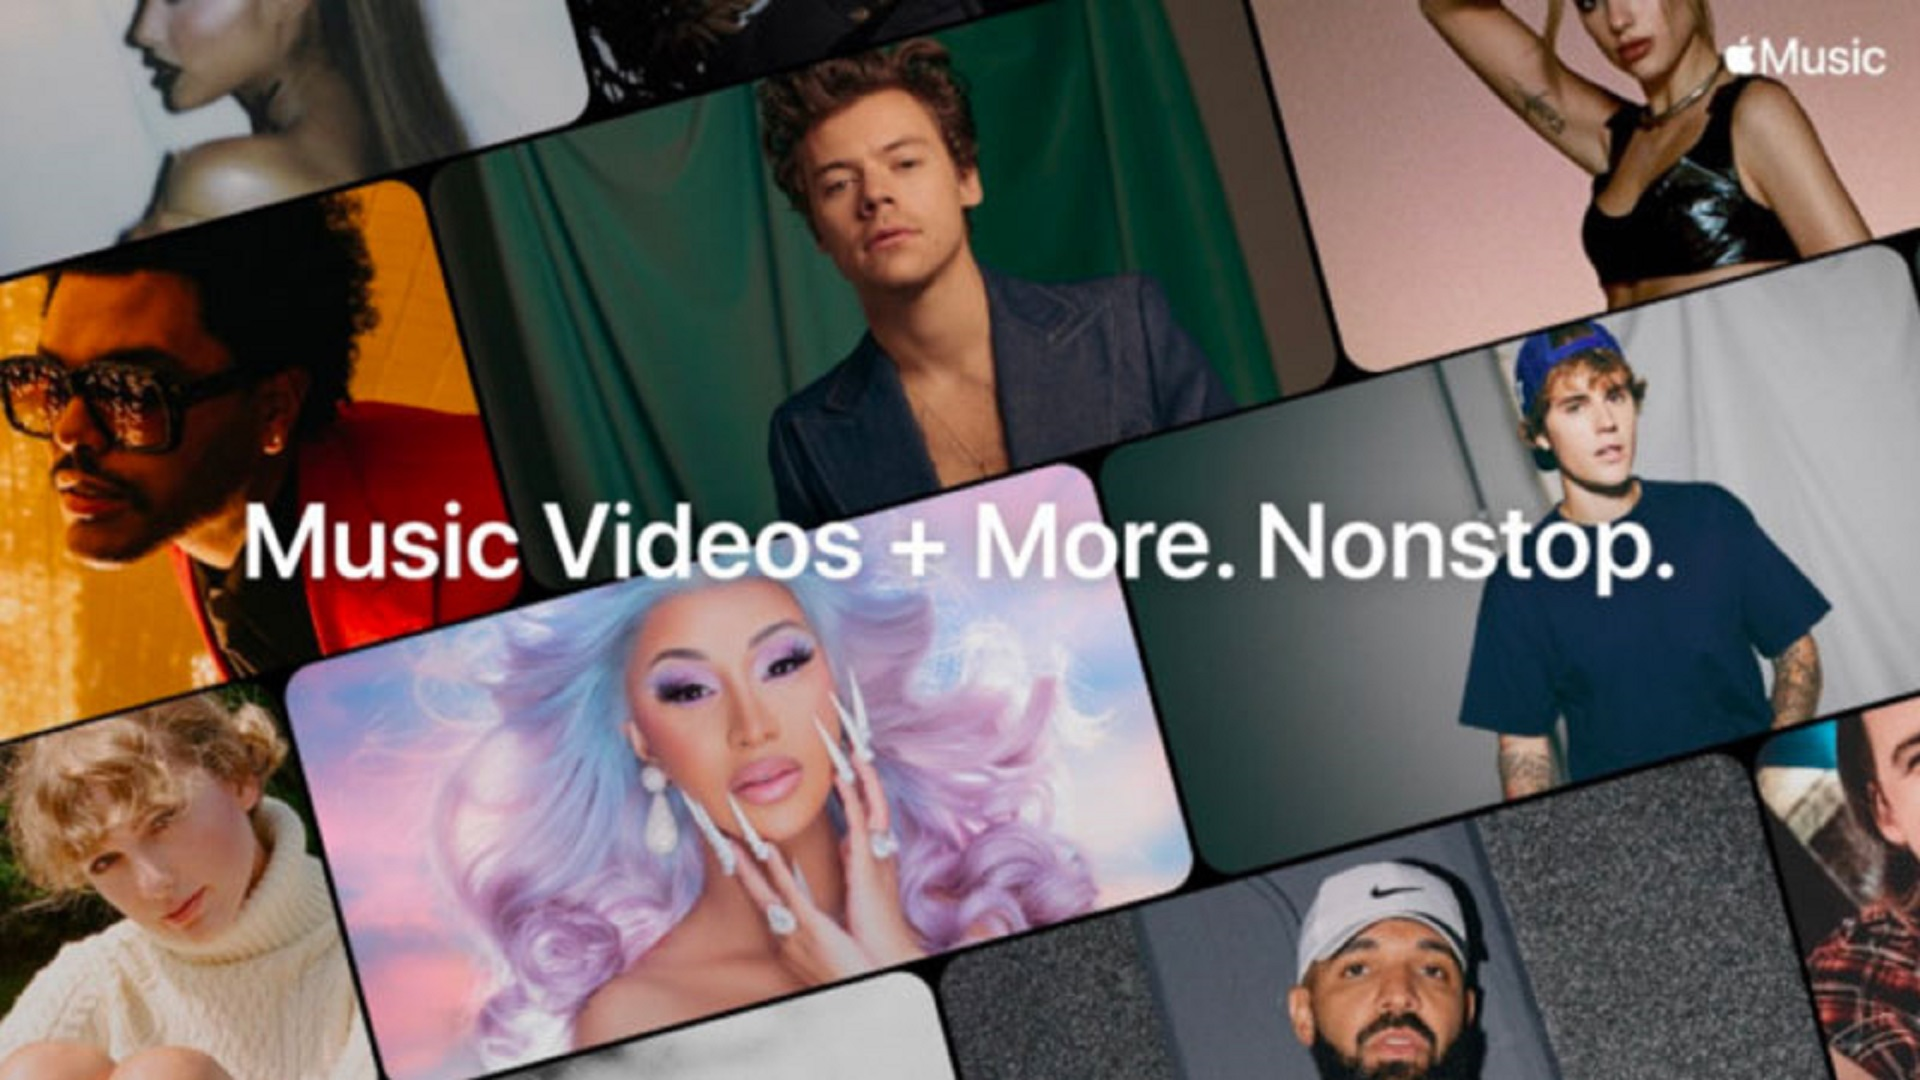 Apple lanza Apple Music TV, un canal musical gratuito